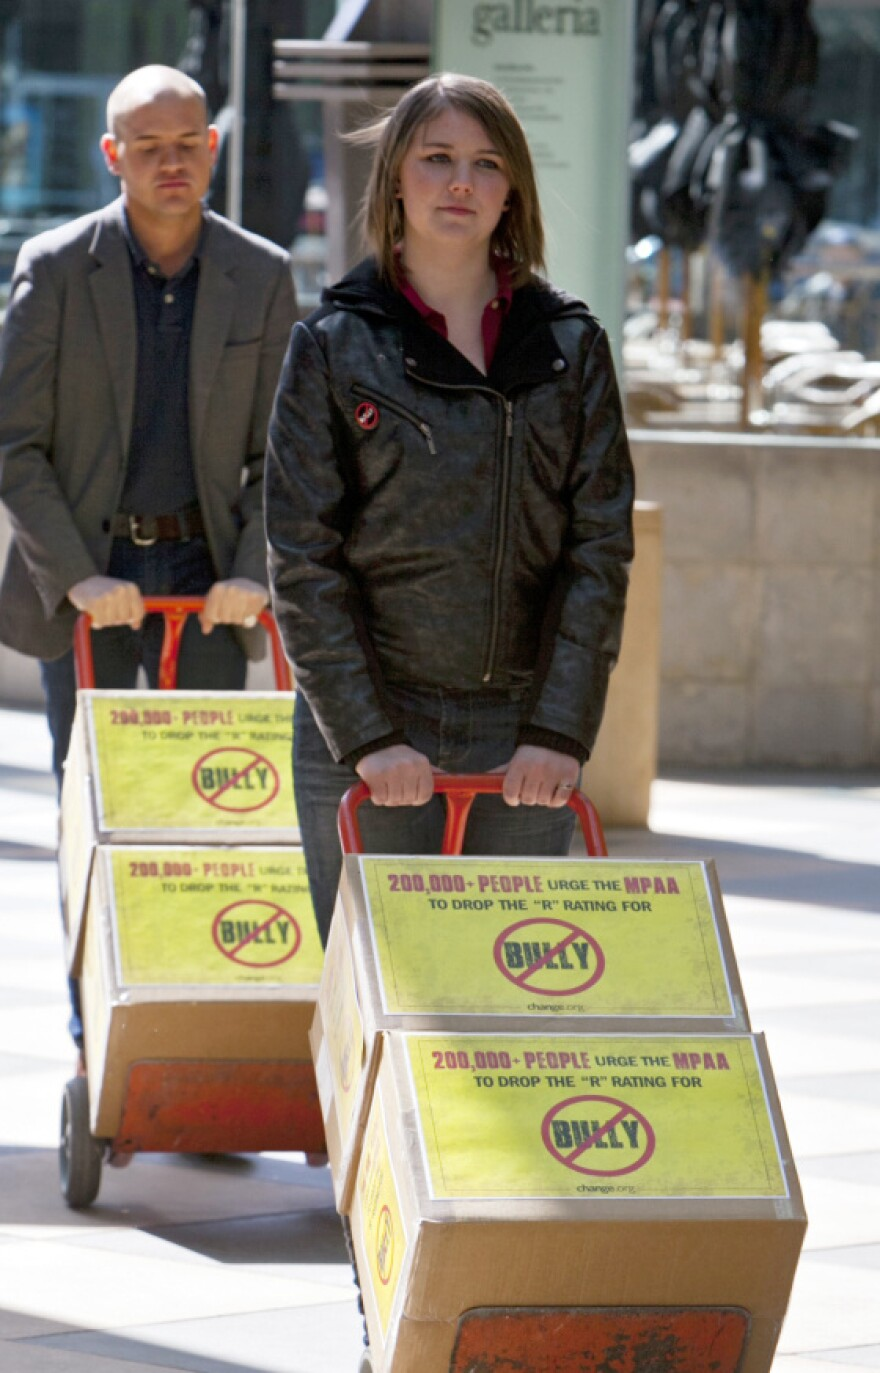 Michigan high school student Katy Butler, 17, and Change.org organizer Mark Anthony Dingbaum deliver petitions with more than 200,000 signatures to the Motion Picture Association of America in Los Angeles on March 7, asking the group to change the R rating on the documentary <em>Bully</em>.